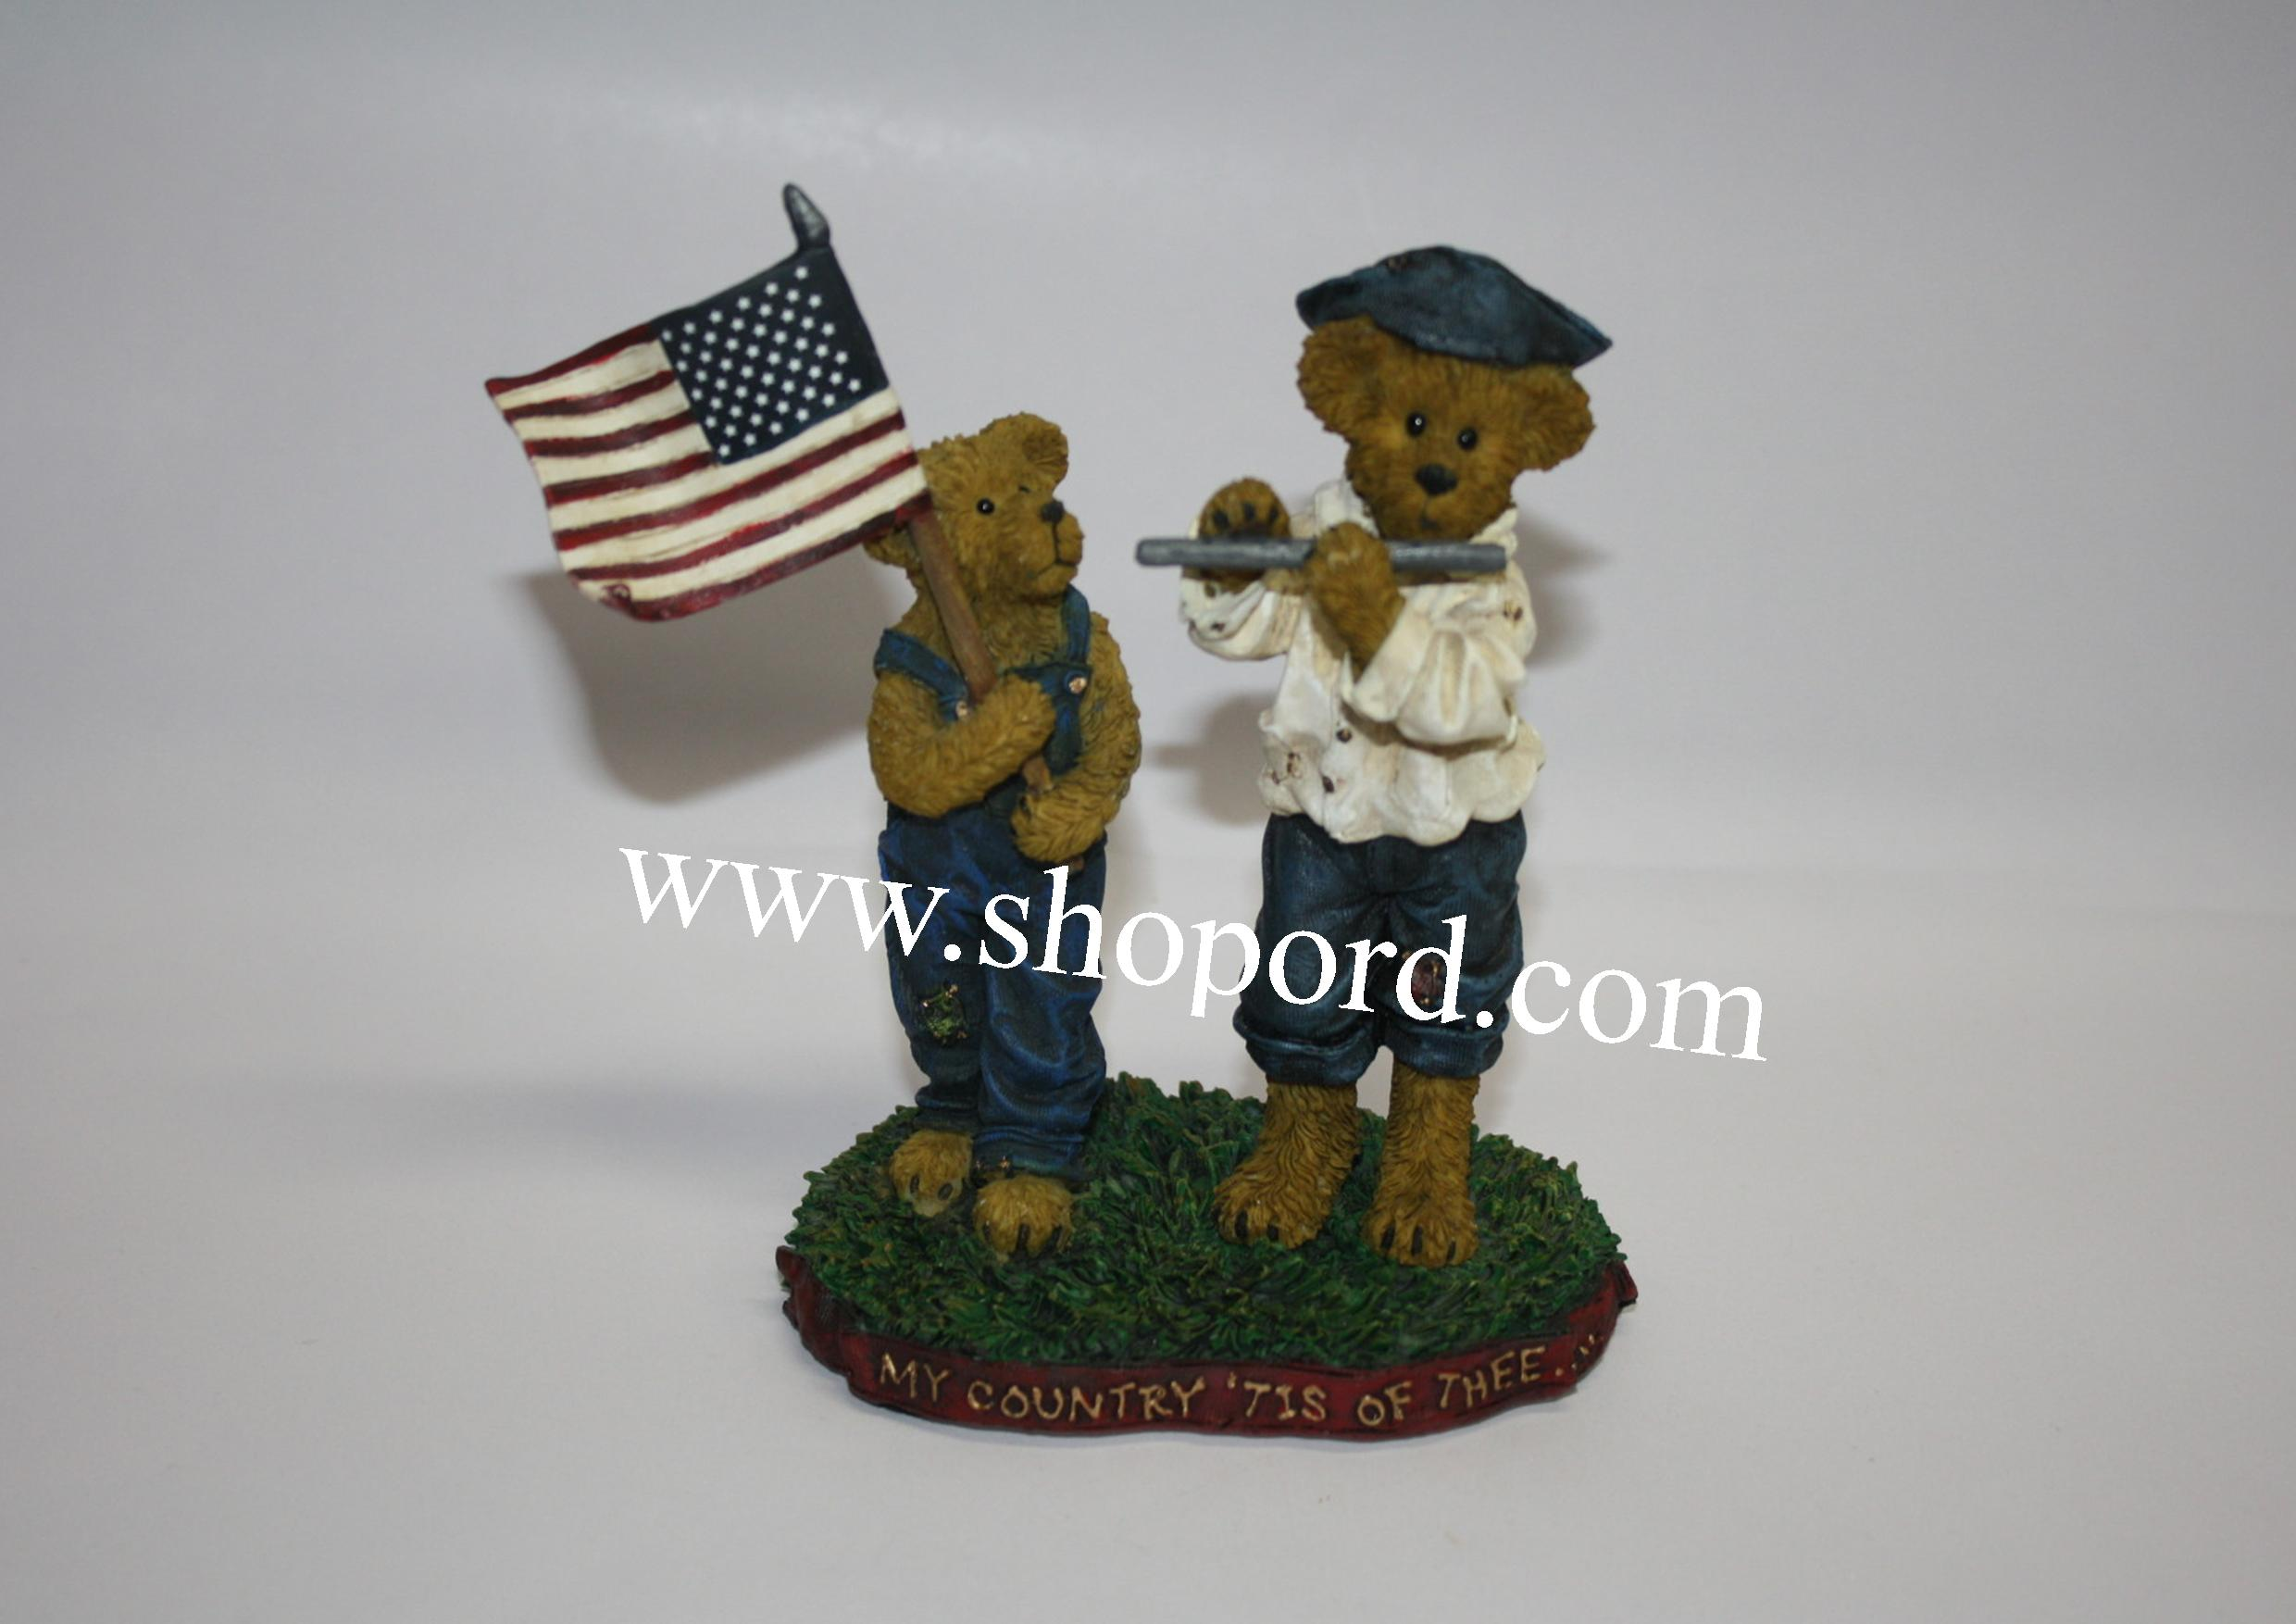 Boyds The Bearstone Collection - Frances t. Proudbeary with Patrick Henry (My Country tis of Thee) #4022167